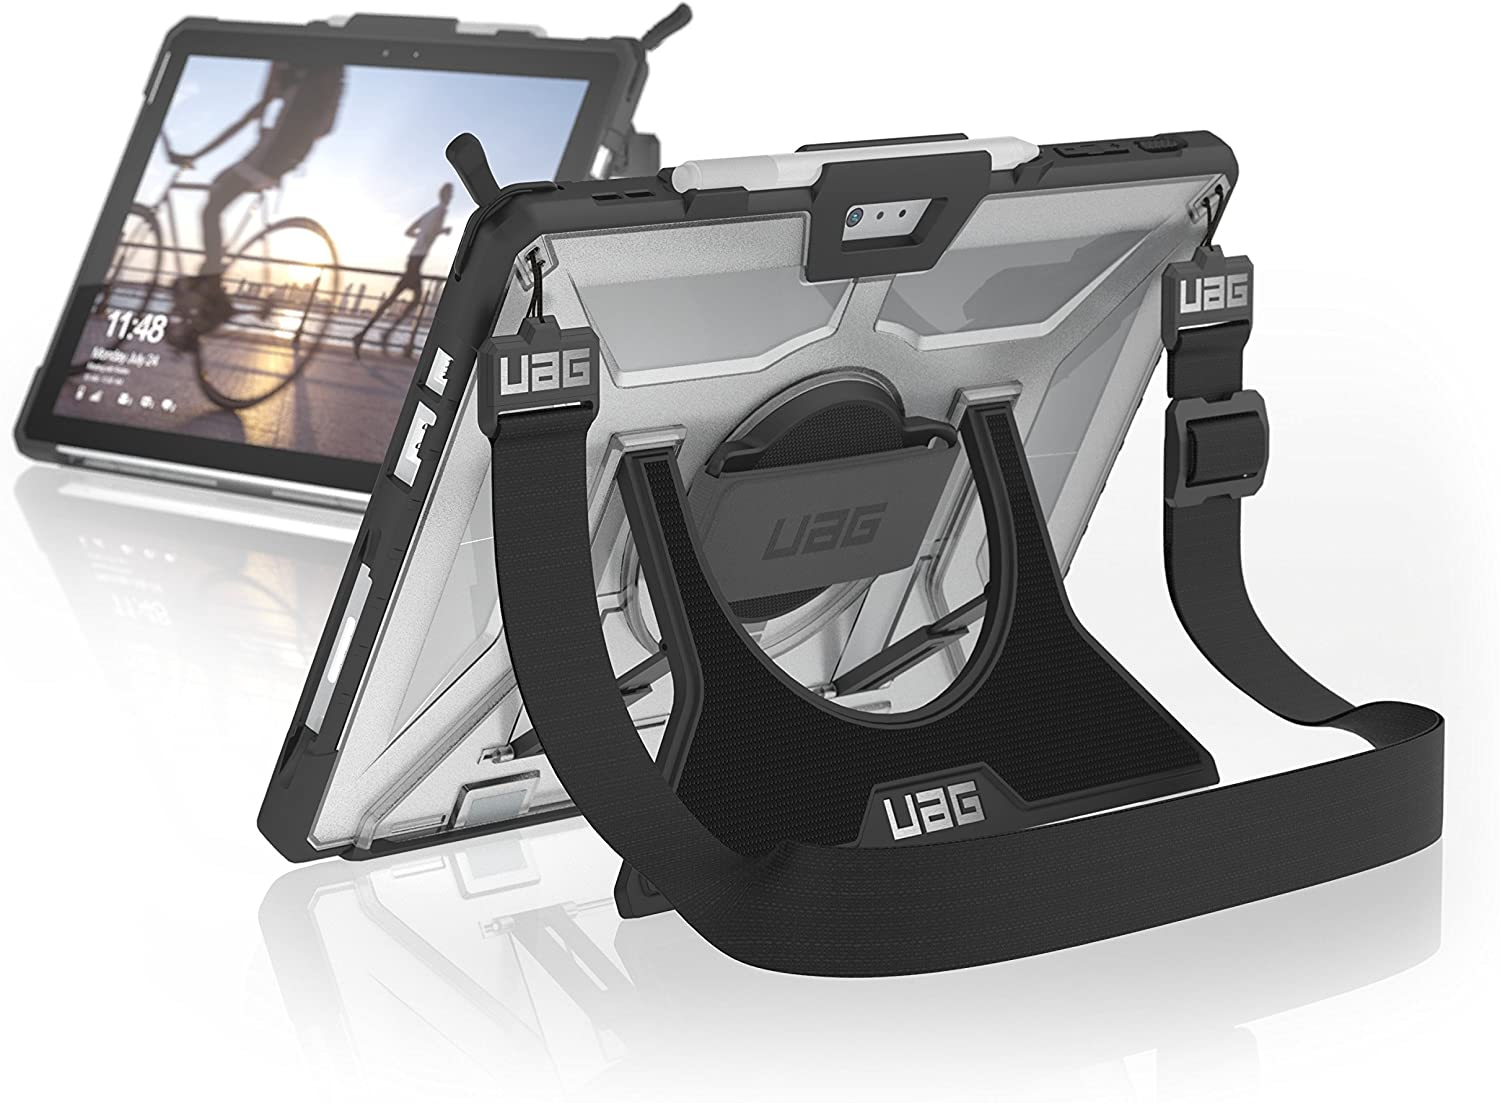 URBAN ARMOR GEAR UAG Microsoft Surface Pro 7/Pro 6/Pro 5th Gen (2017) (LTE)/Pro 4 Plasma with Hand Strap & Shoulder Strap Plasma Rugged [Ice] Military Drop Tested Case